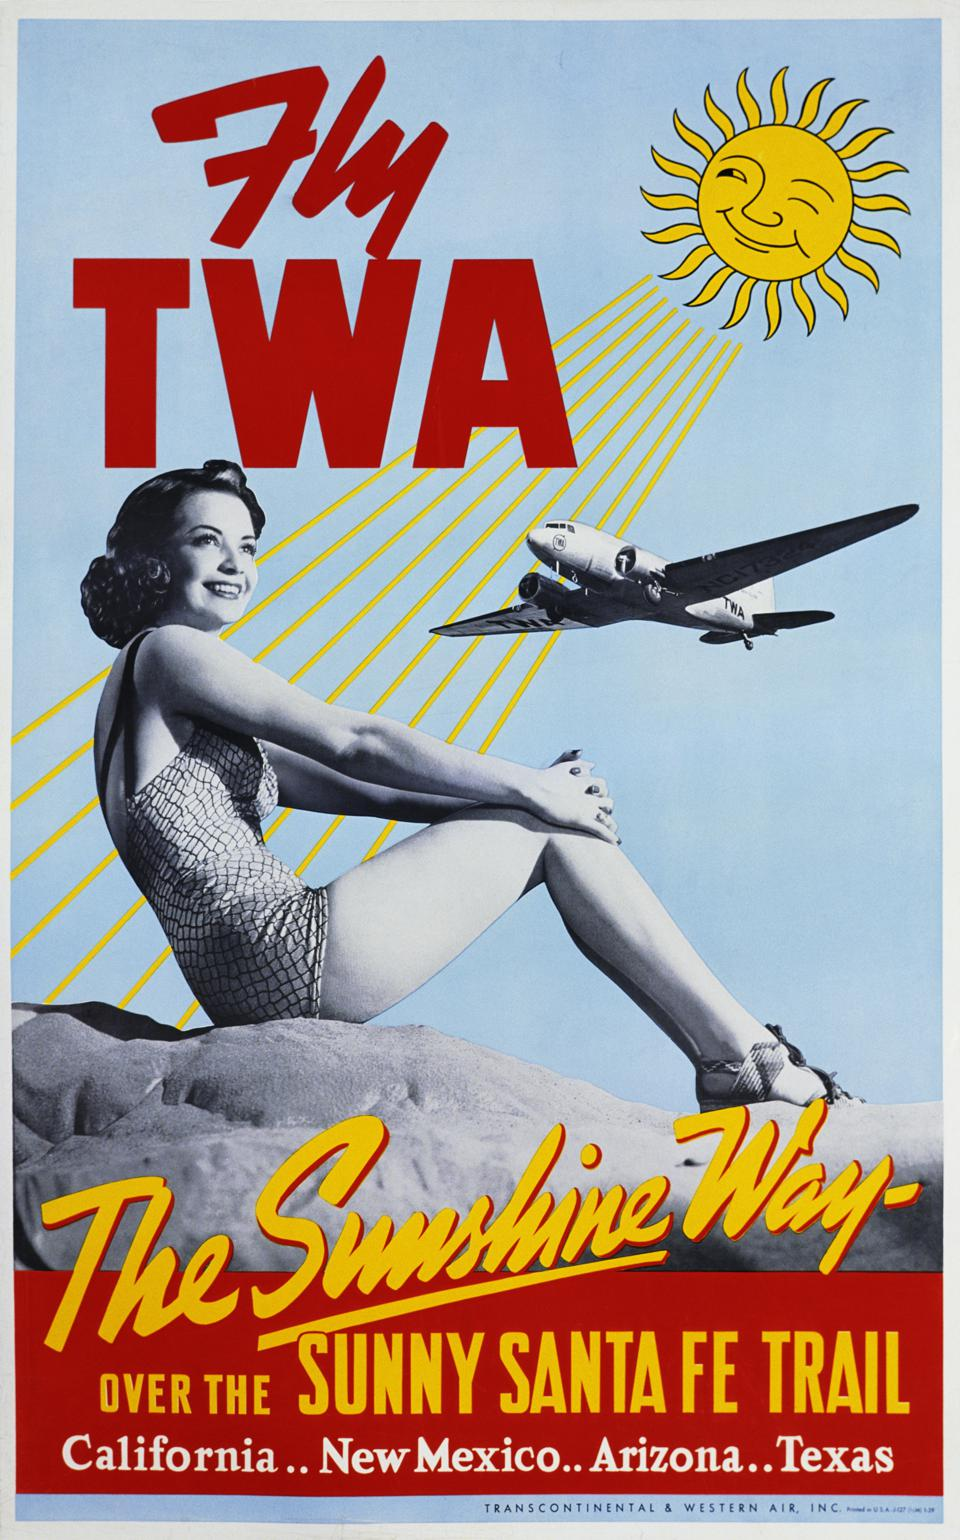 Fly TWA - The Sunshine Way Travel Poster